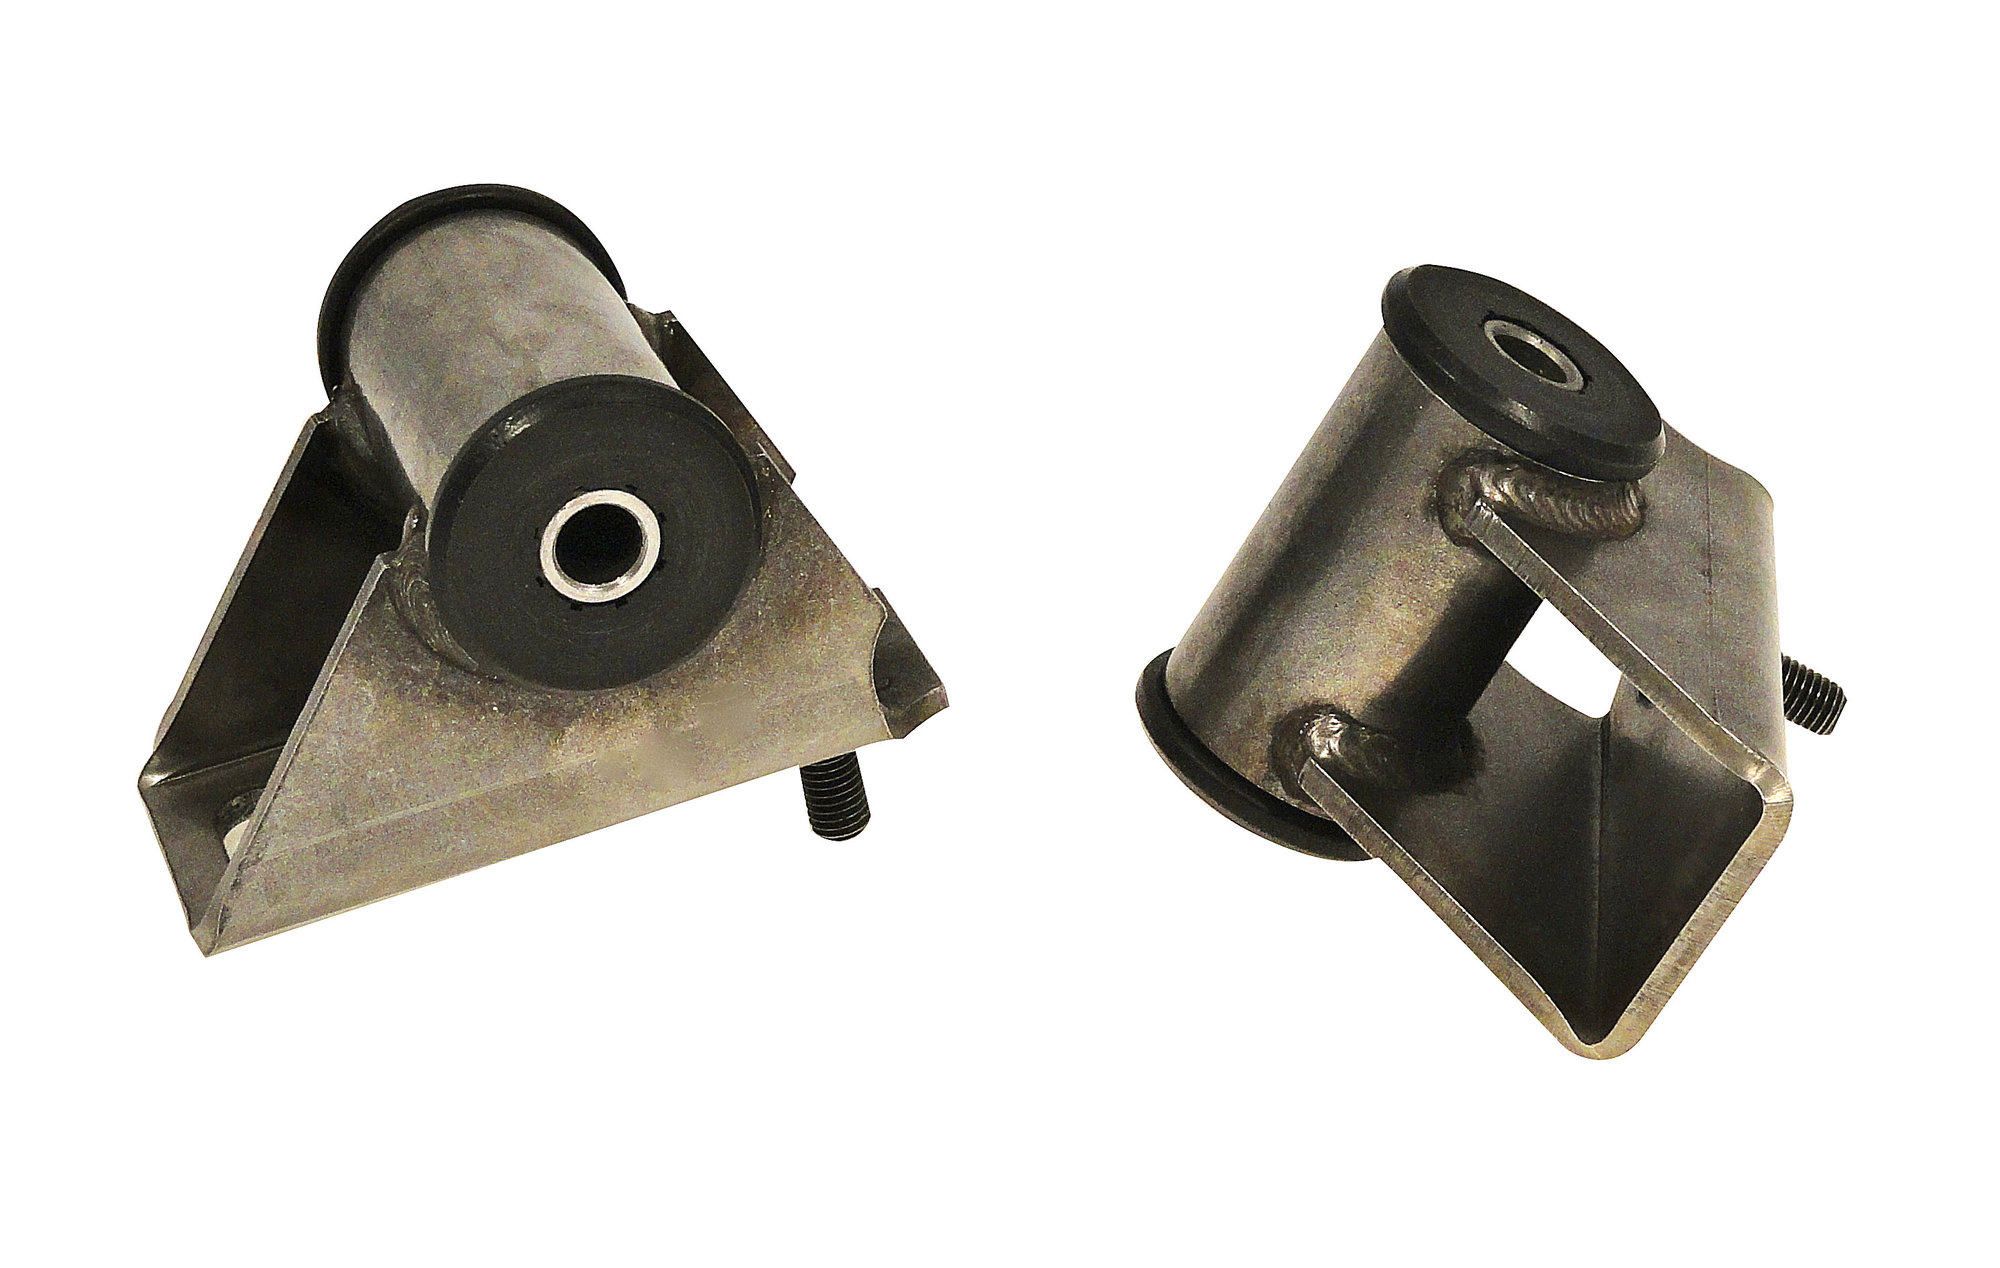 hight resolution of mountain off road bombproof motor mounts for 87 06 jeep wrangler yj tj tj unlimited cherokee xj comanche mj with 4 0 4 2l quadratec